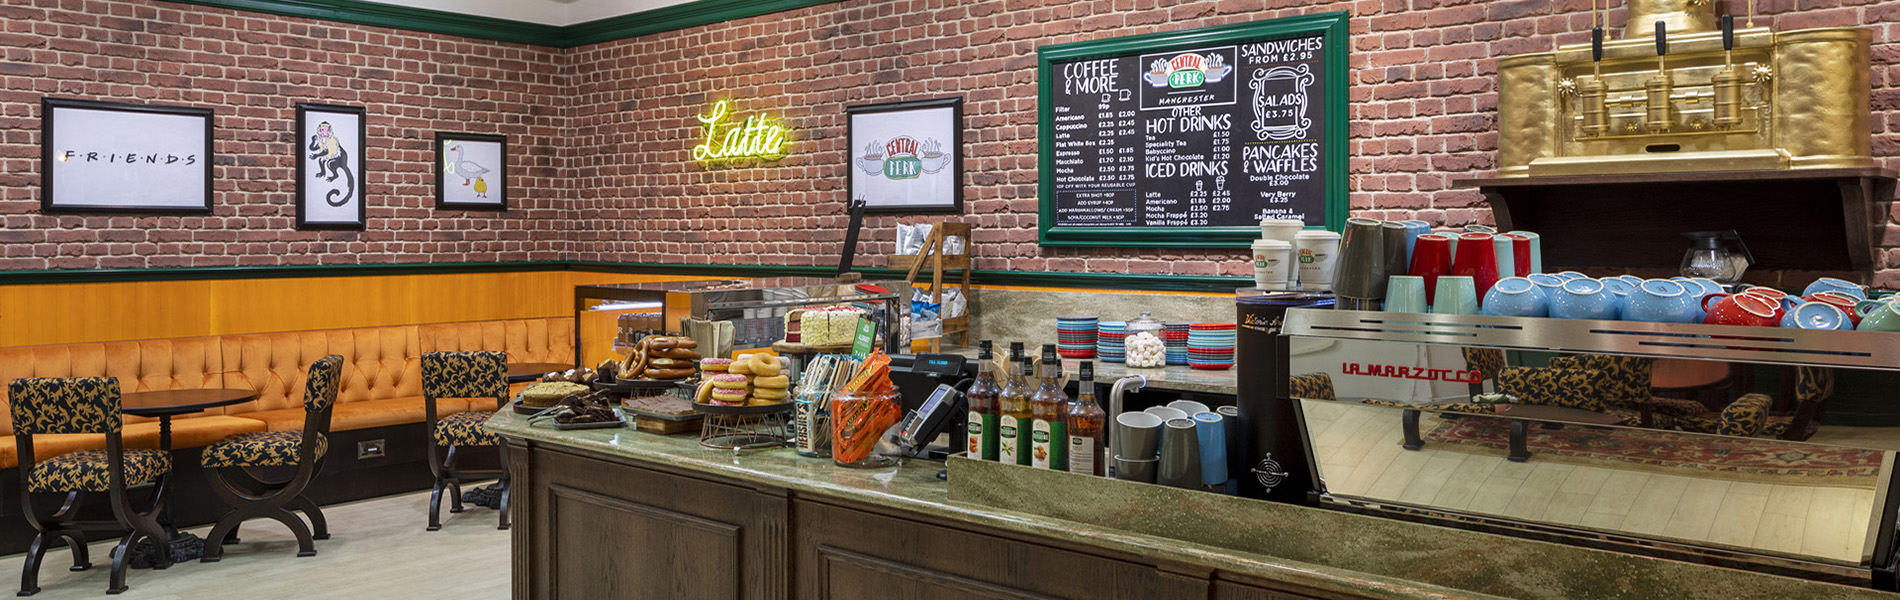 THE UK'S FIRST CENTRAL PERK CAFÉ